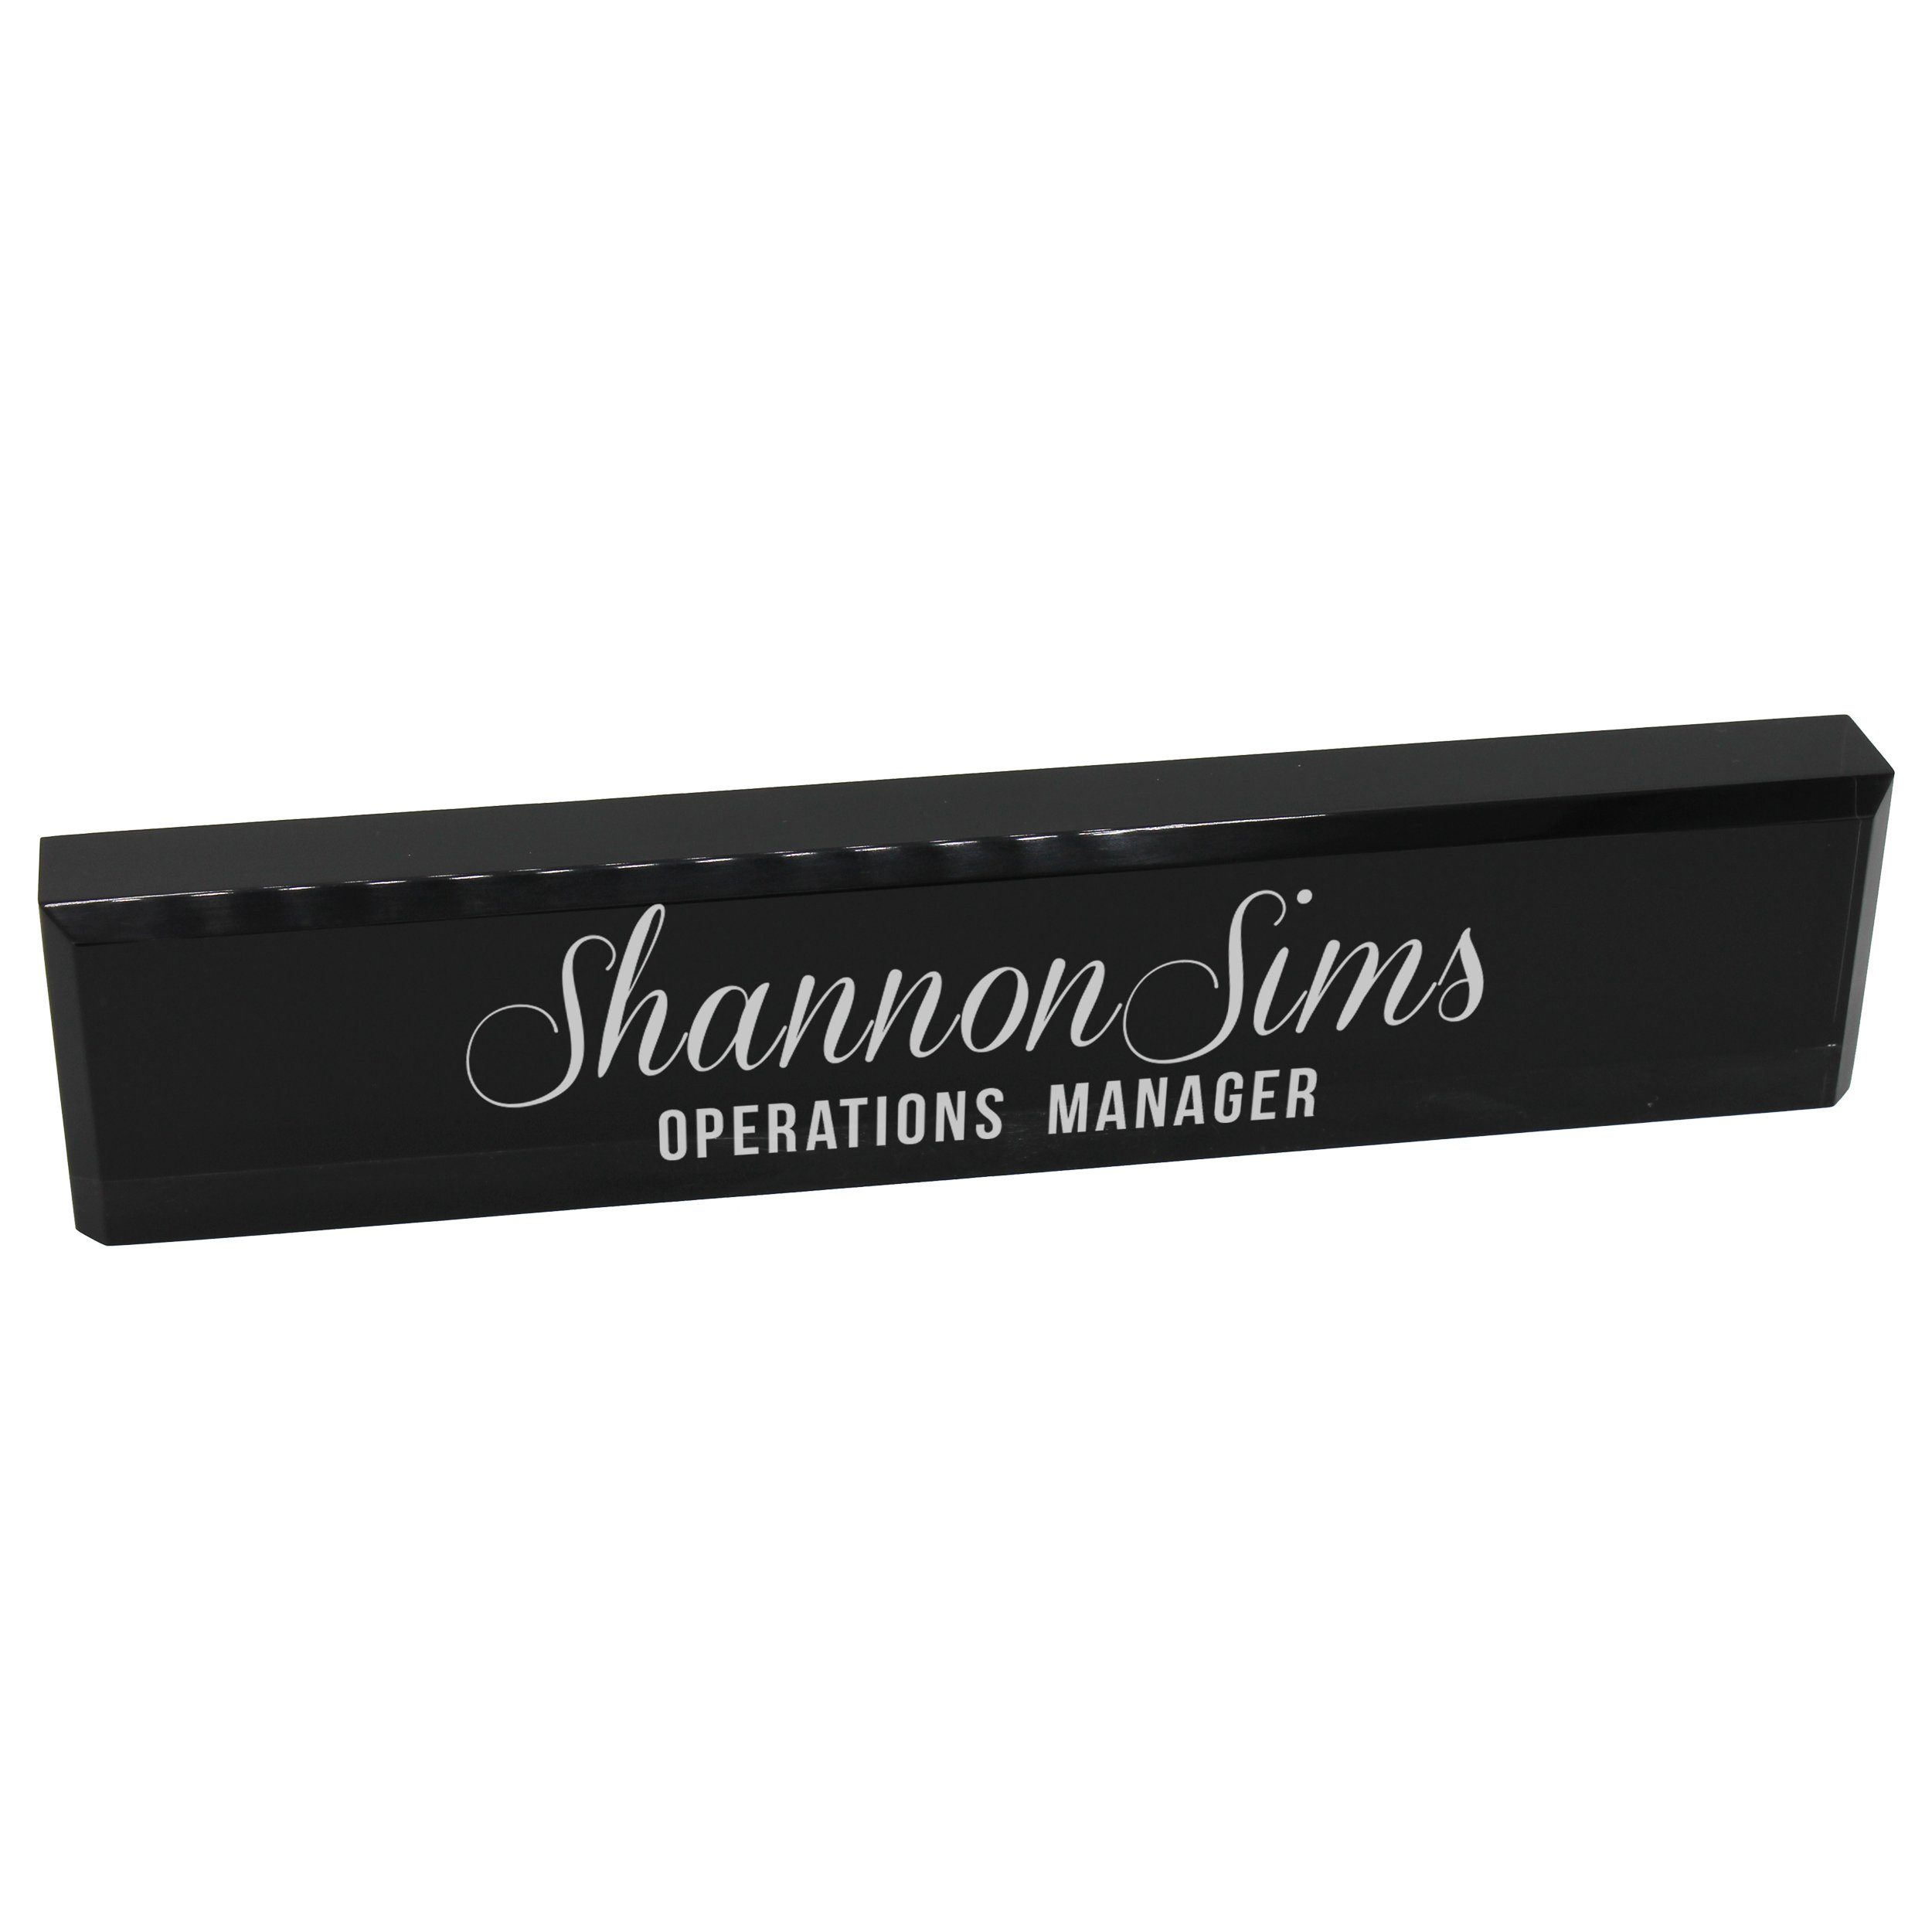 Personalized Desk Wedge Name Plate - Custom Engraved Business Gifts (Black Acrylic)